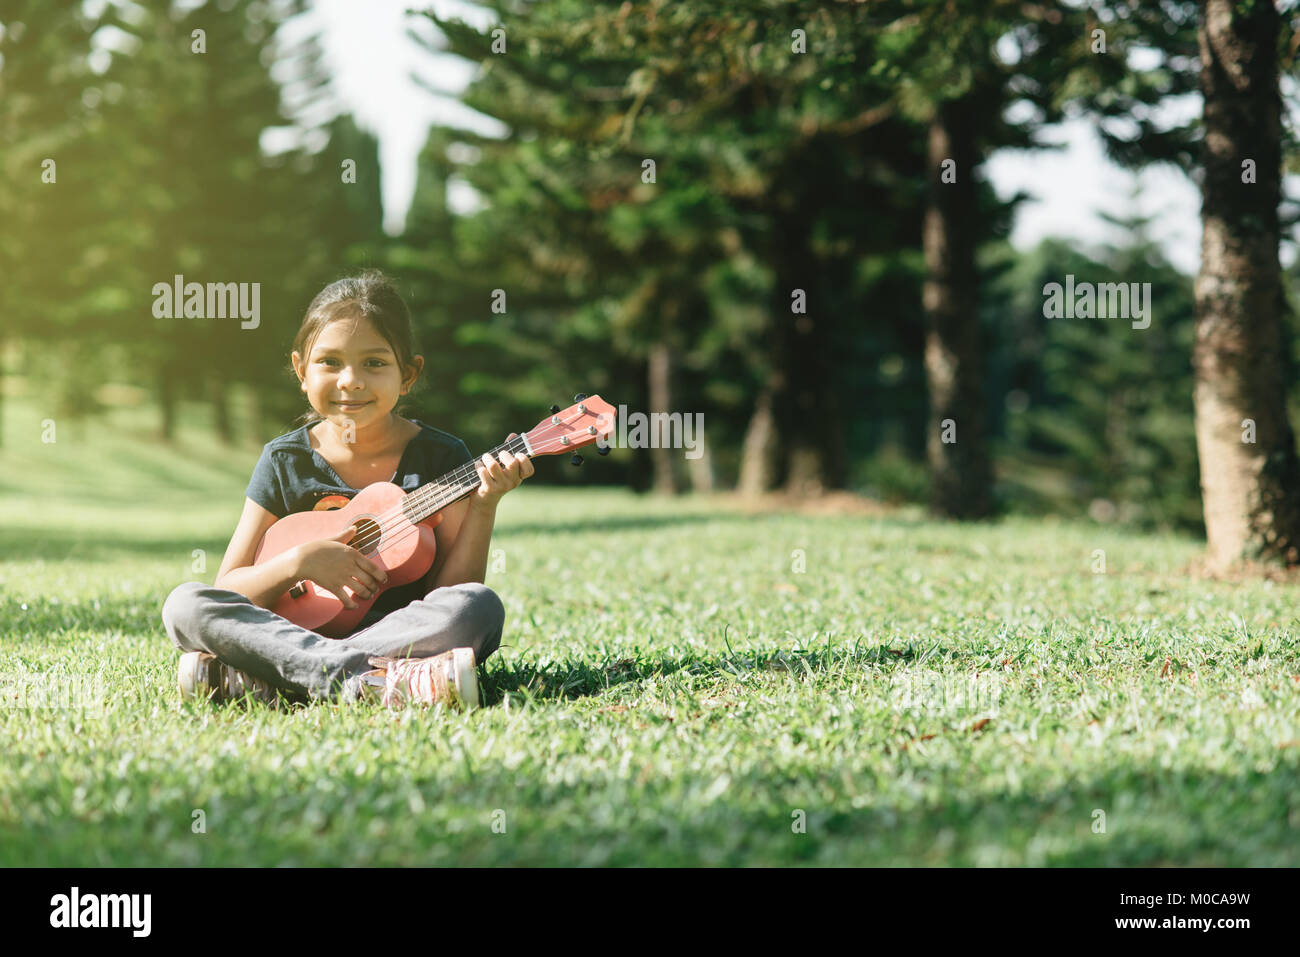 young and happy asian girl playing ukelele guitar in the park at sunny morning while looking at camera. hobbies - Stock Image